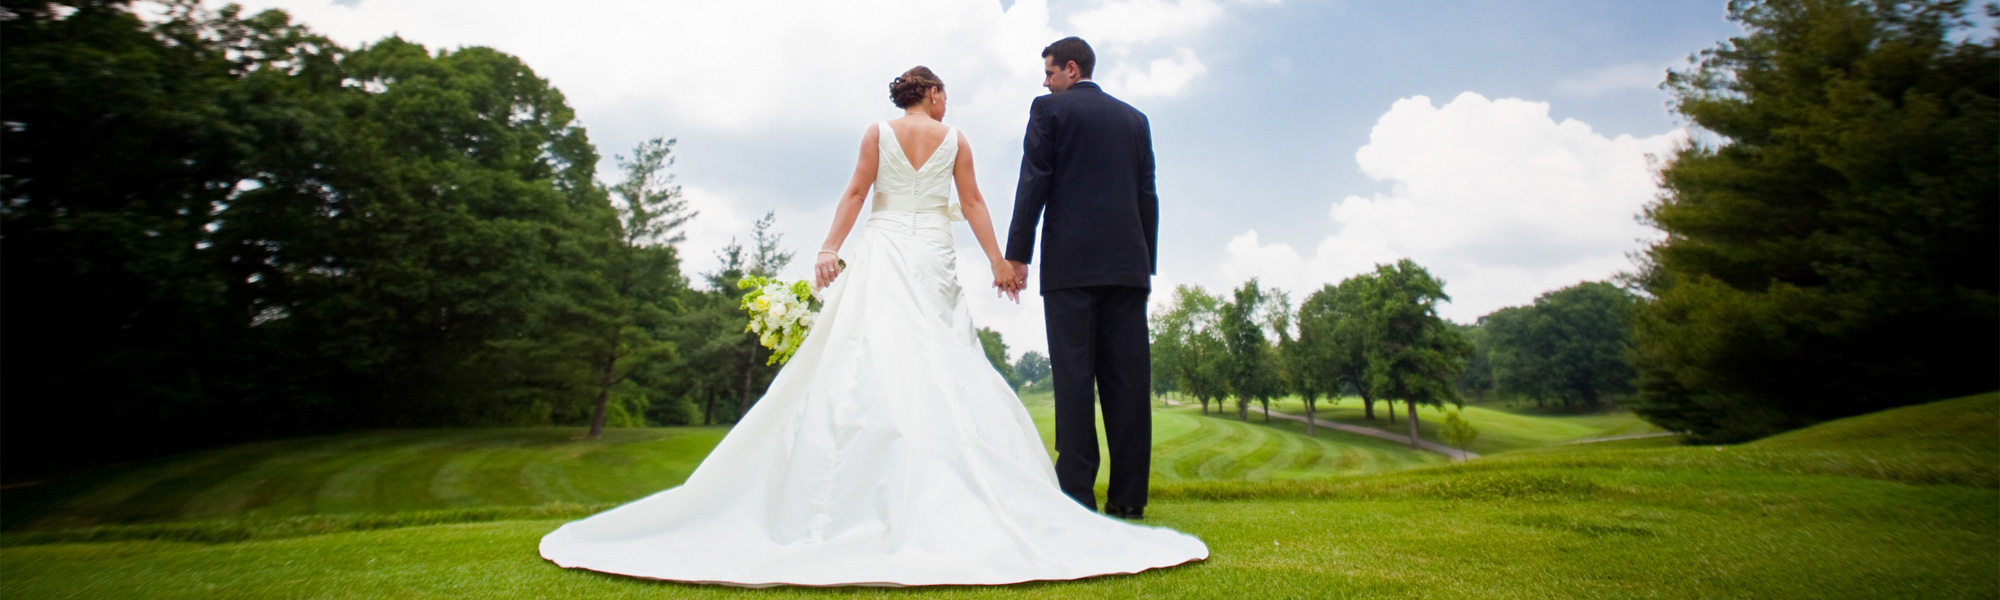 prospective-bride-and-groom